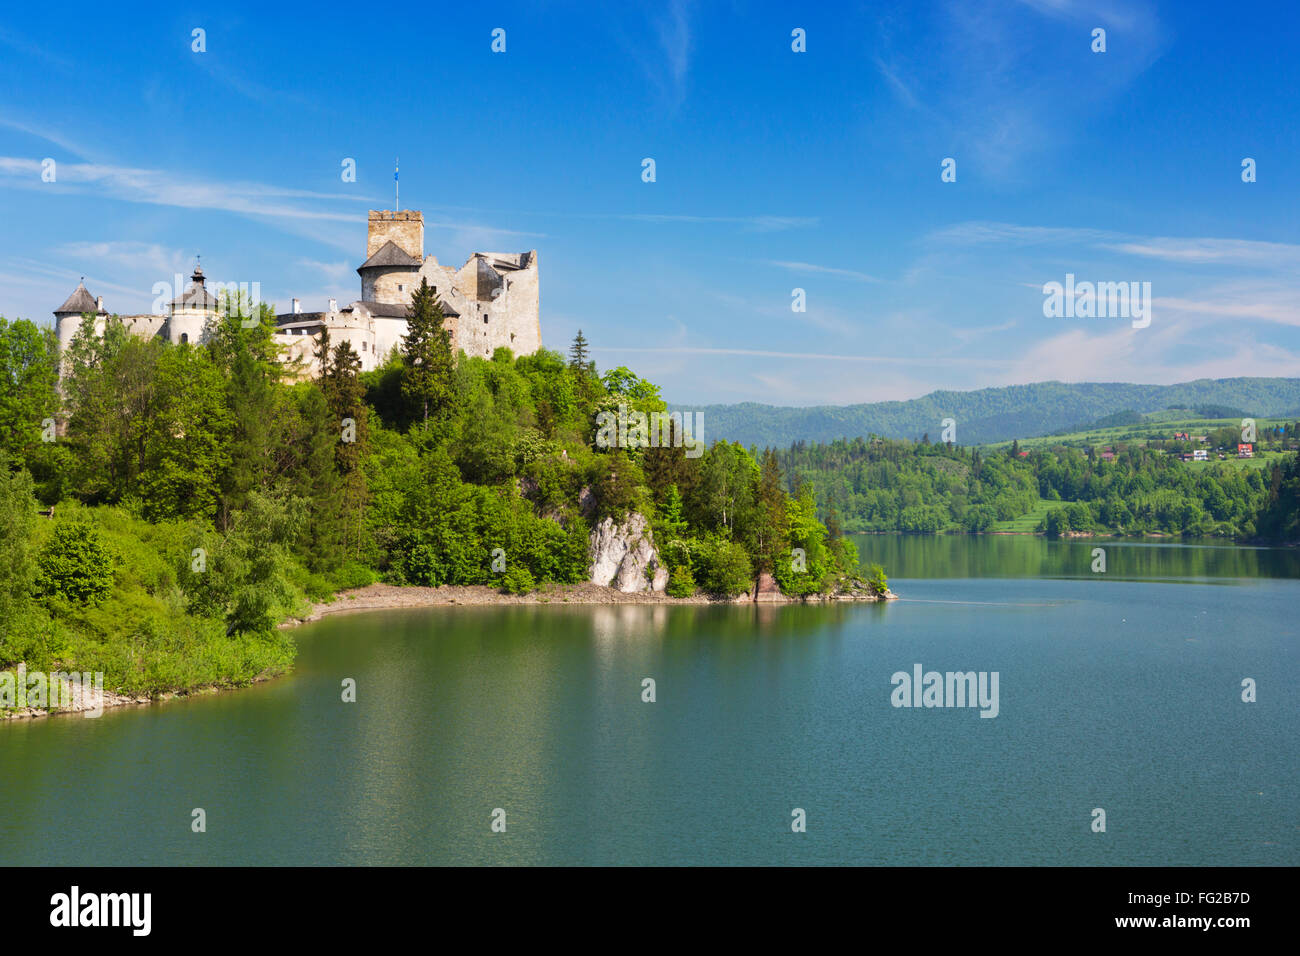 The Niedzica Castle in the Pieniny mountains in Poland on a bright and sunny day. - Stock Image